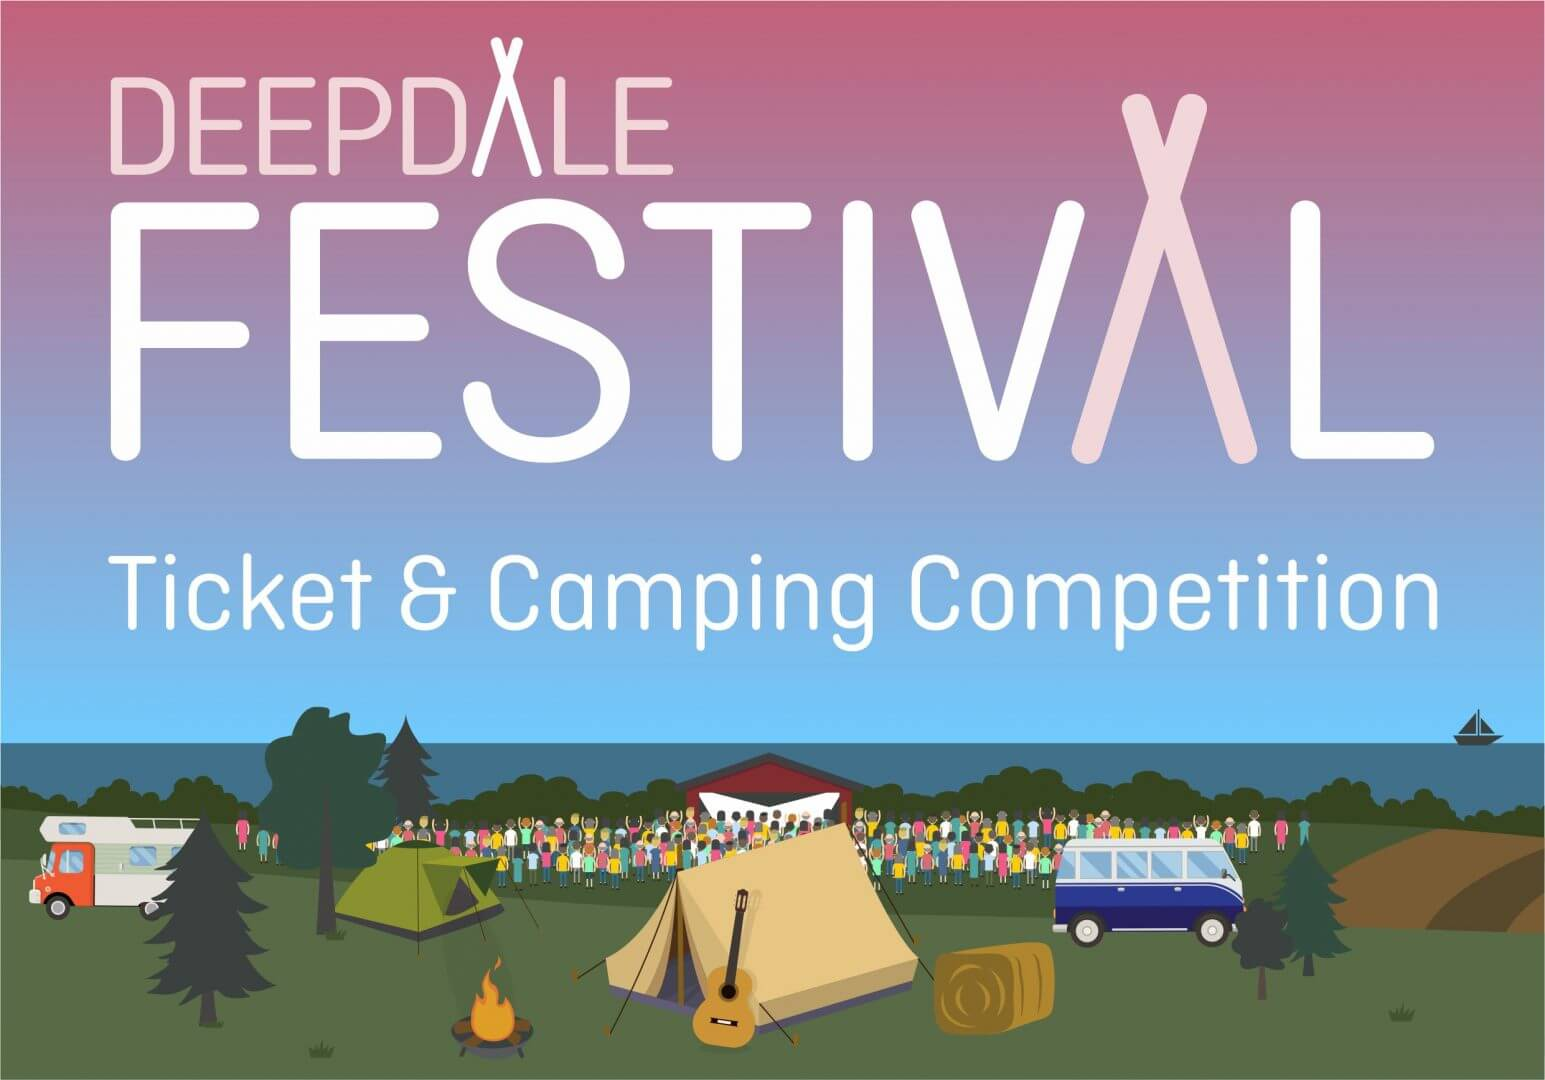 Win Tickets & Camping for Deepdale Festival